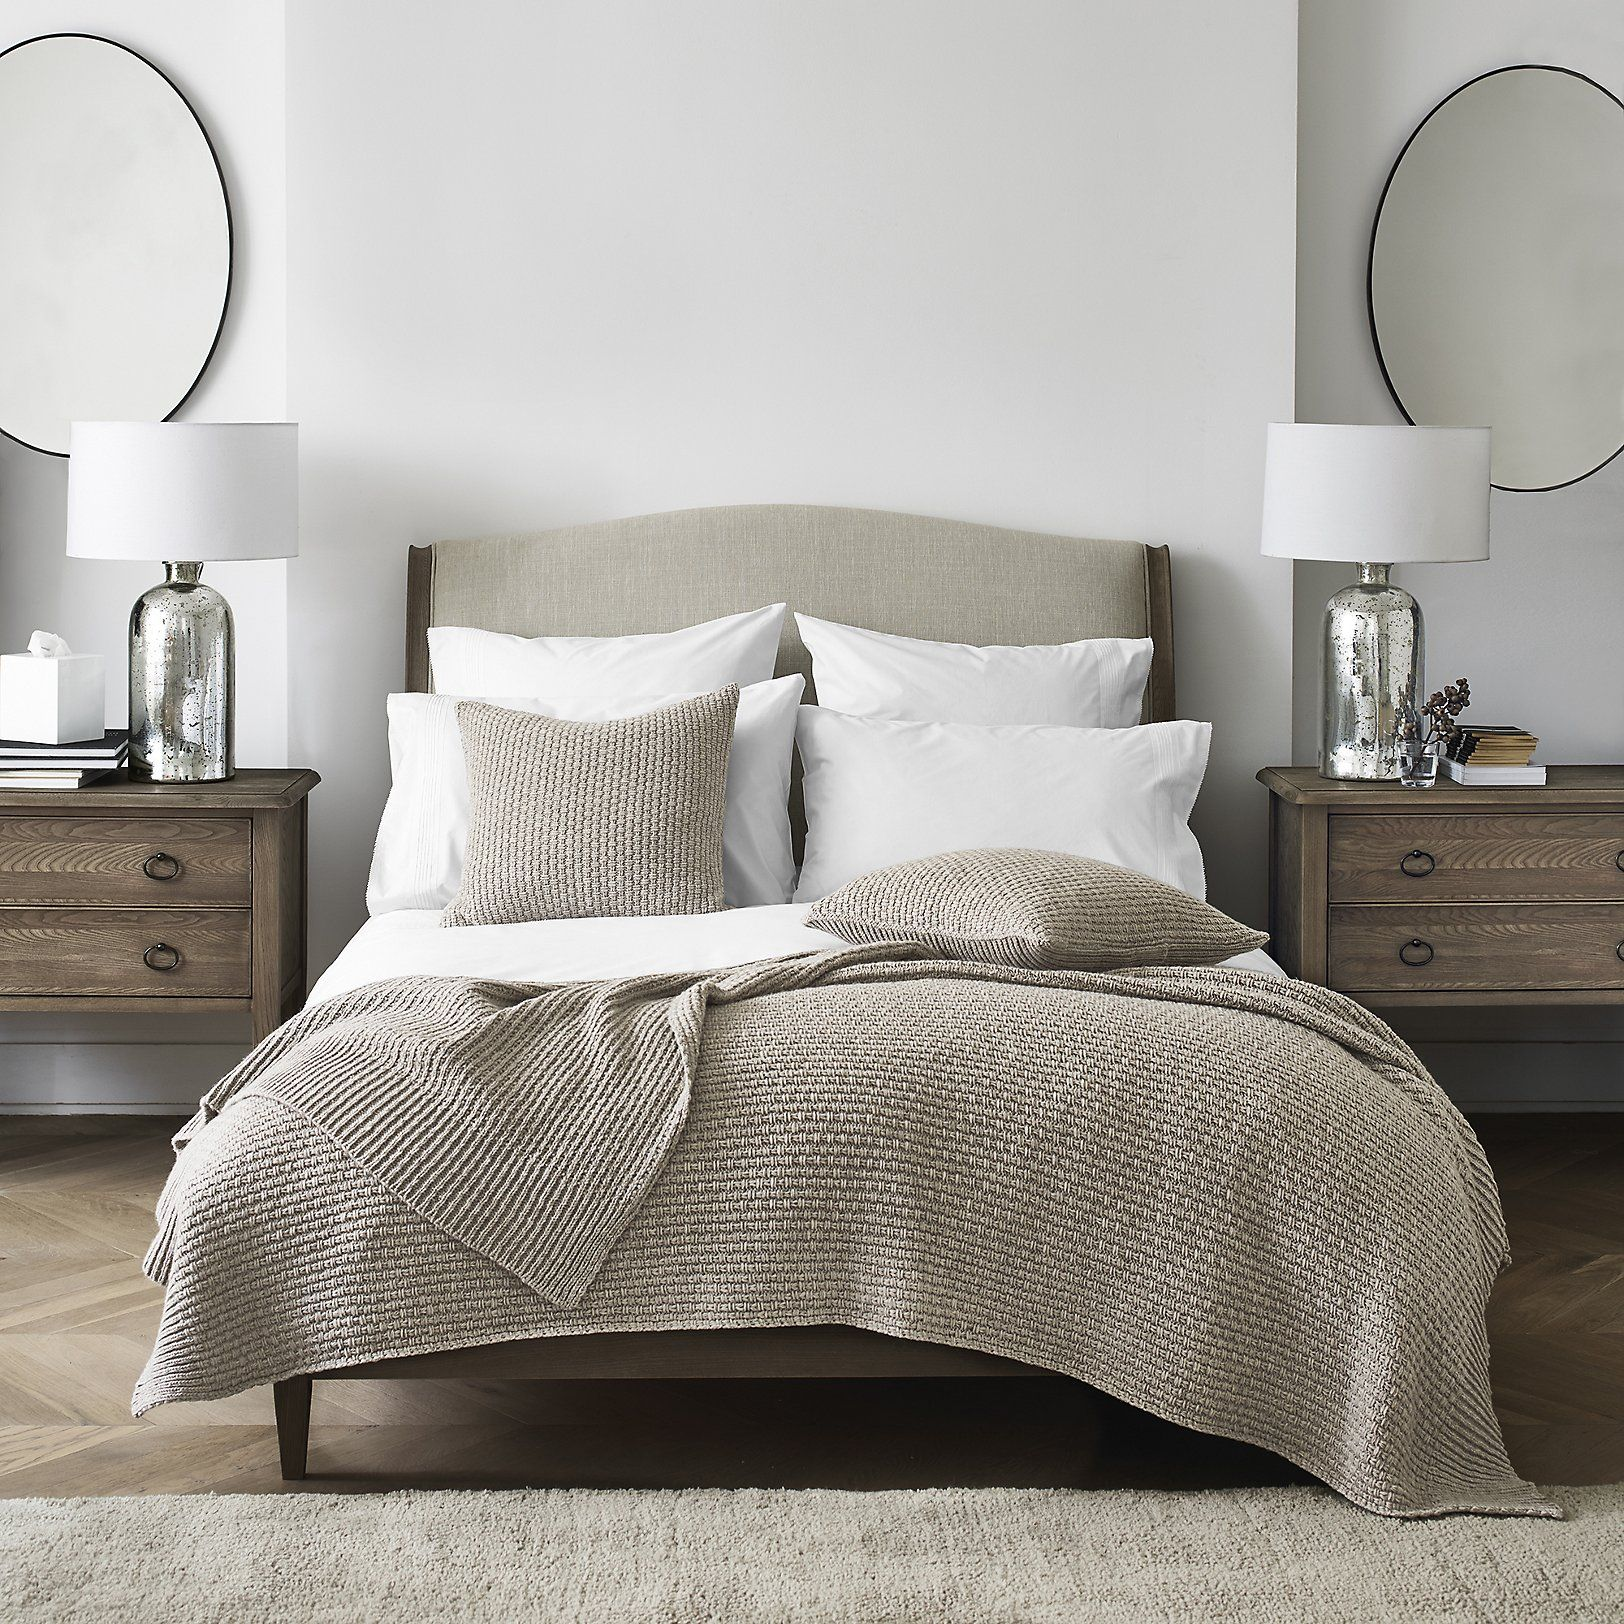 Ardleigh Bed   Beds   The White Company   Bed furniture, The ...